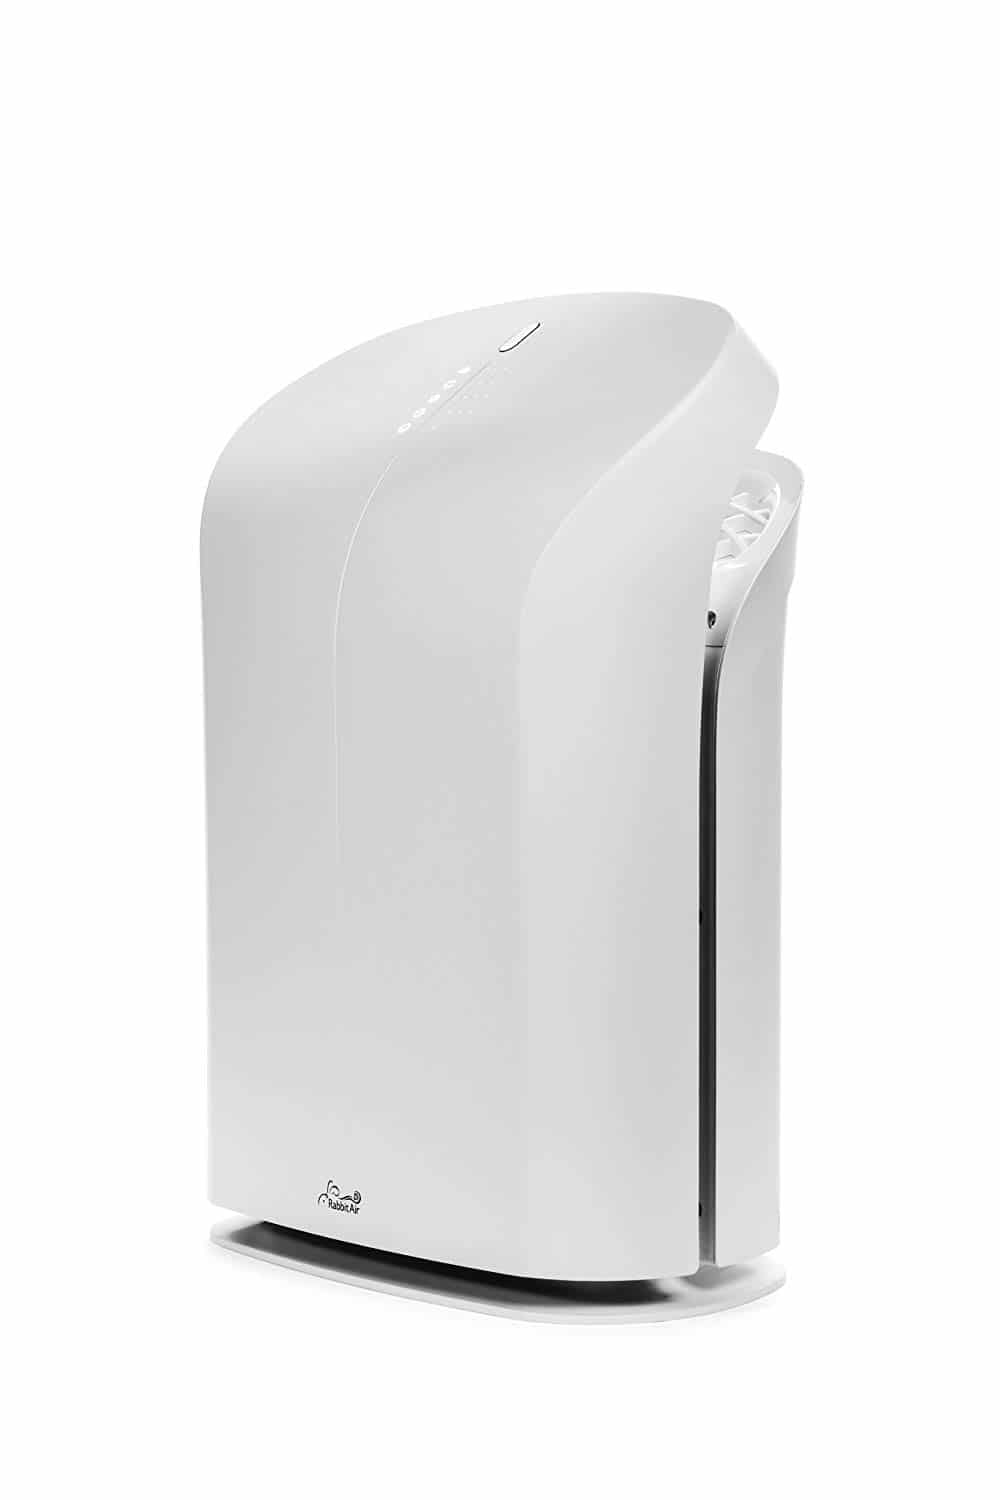 Rabbit Best Air Purifier topratedhomeproducts